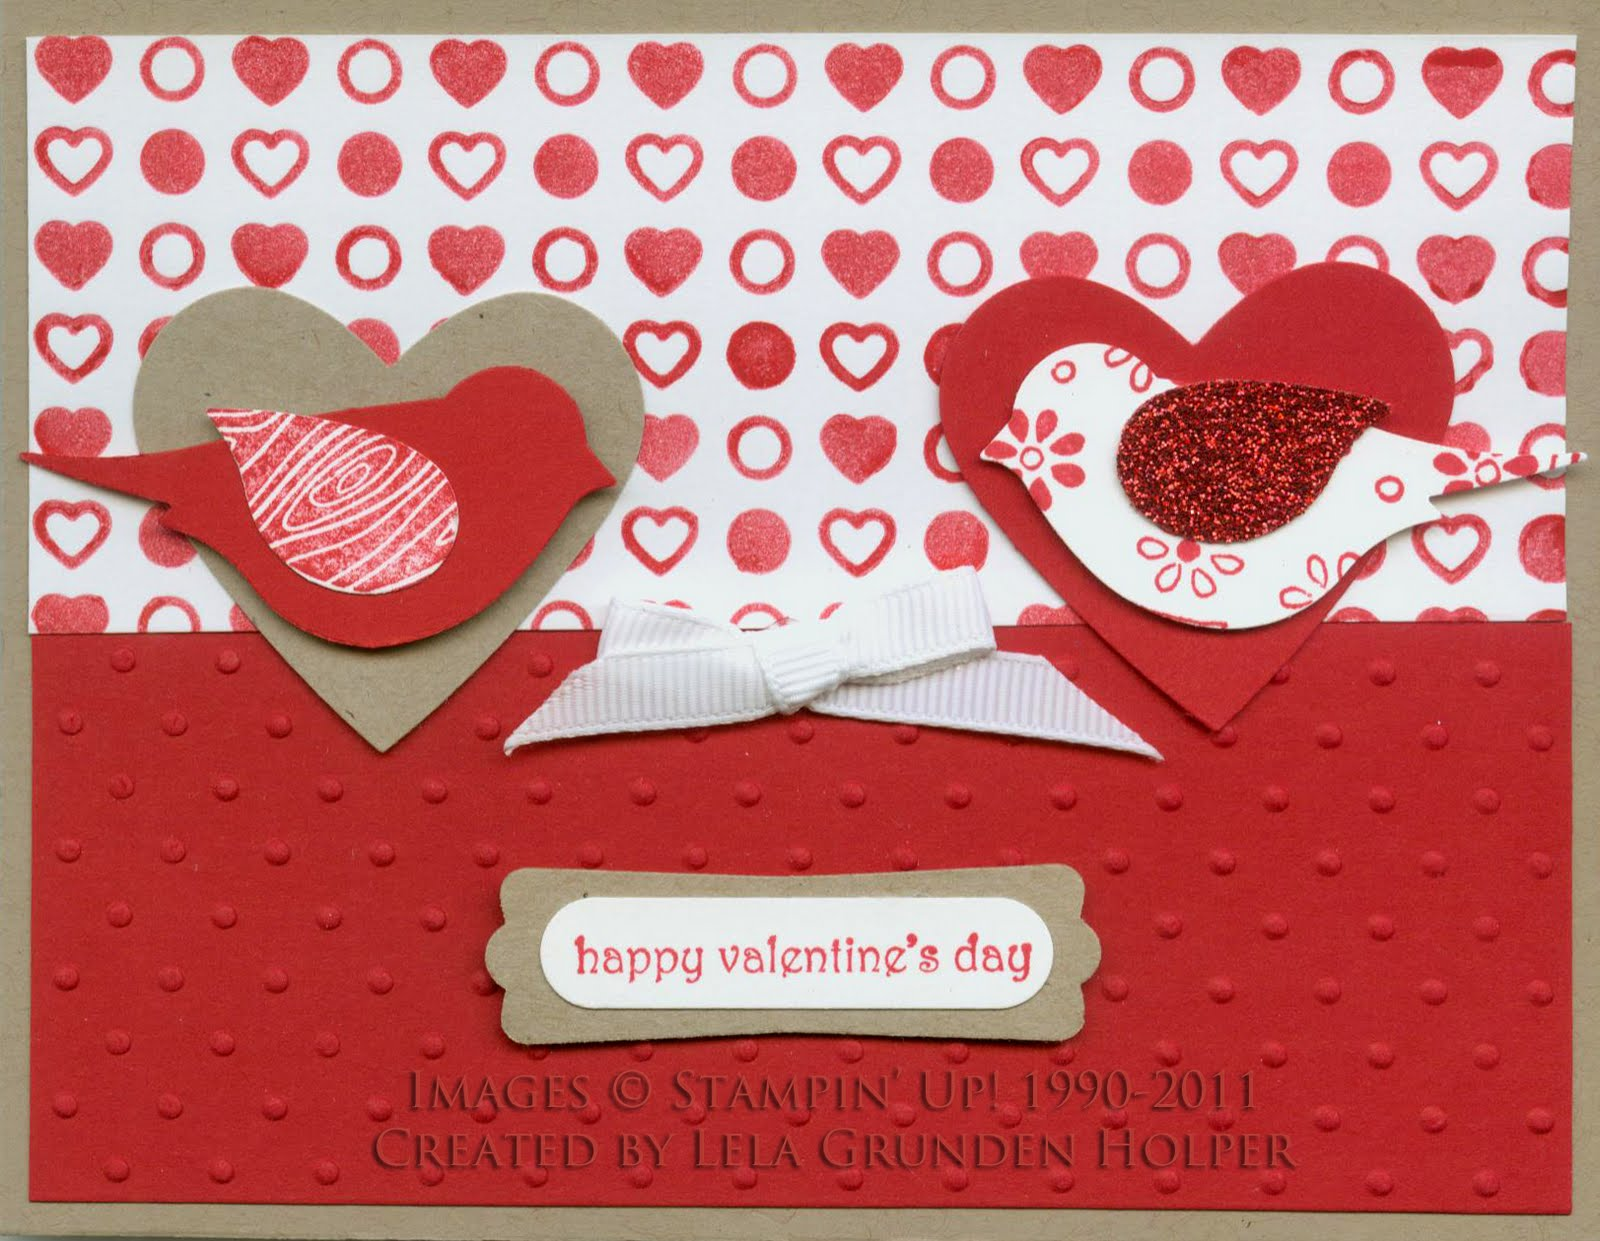 Valentines Day wishes cards HD wallpapers of Cards – Valentine Card Wishes